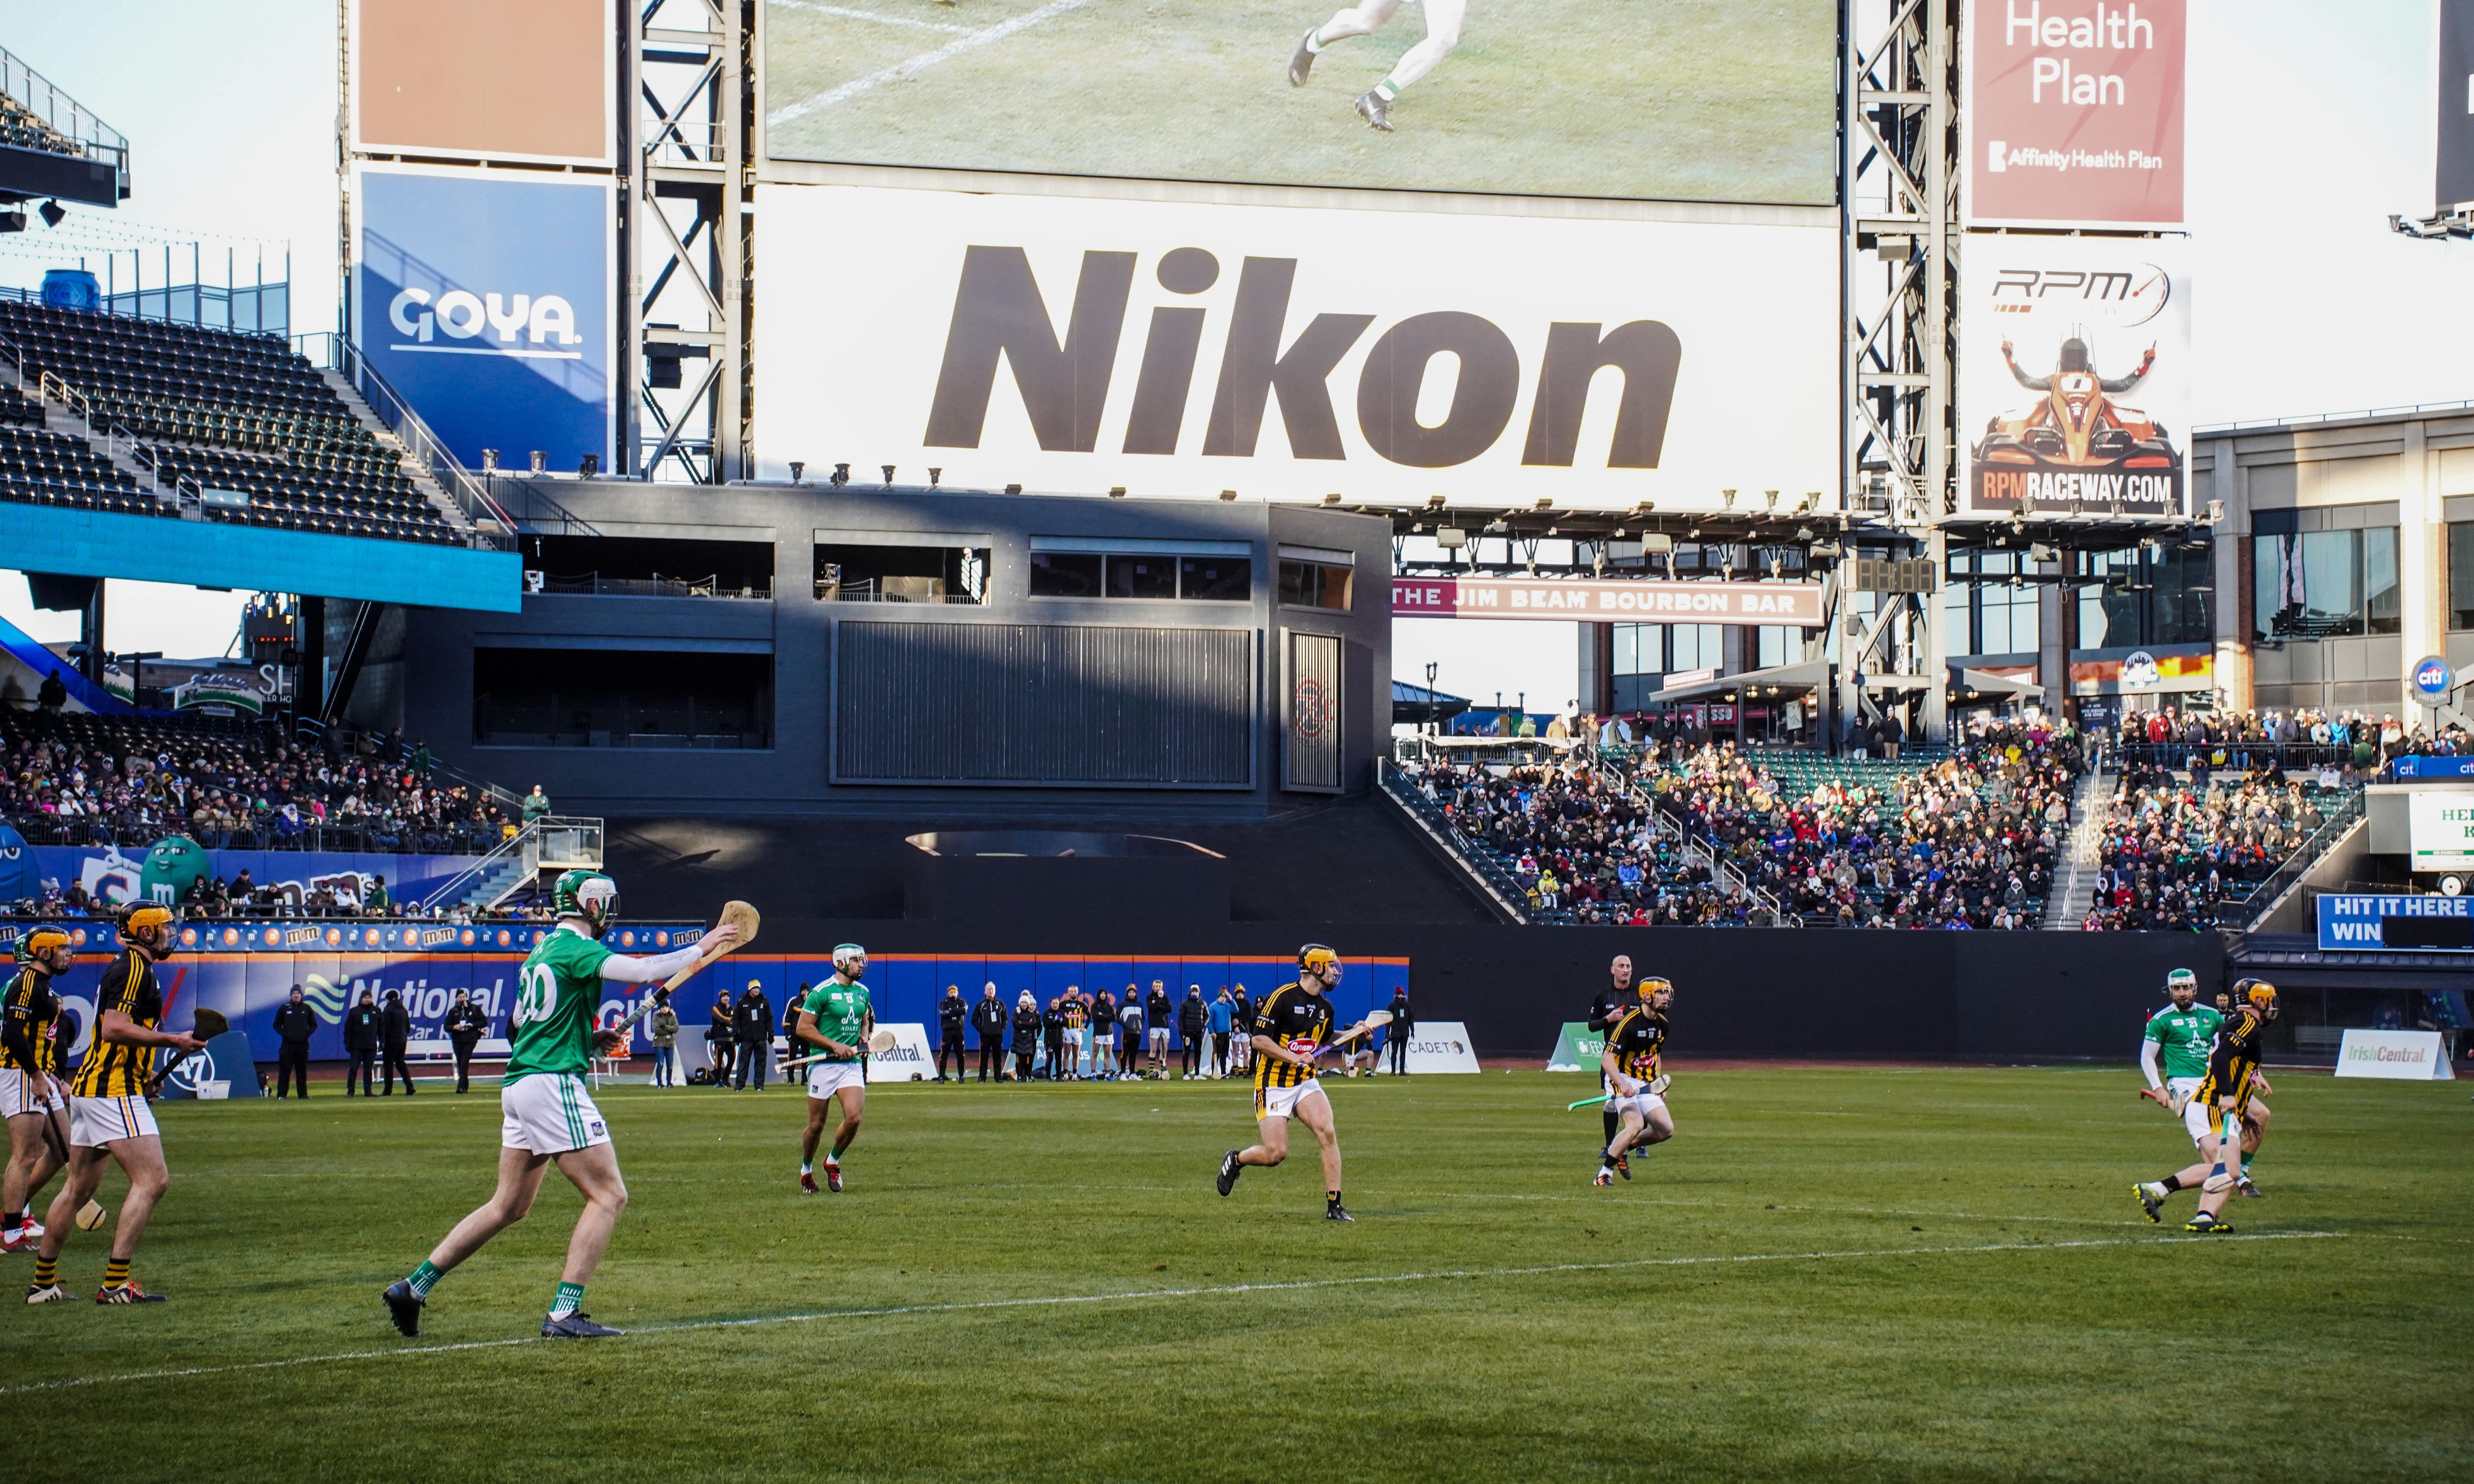 Beer, hot dogs, a New York baseball field and ... hurling?